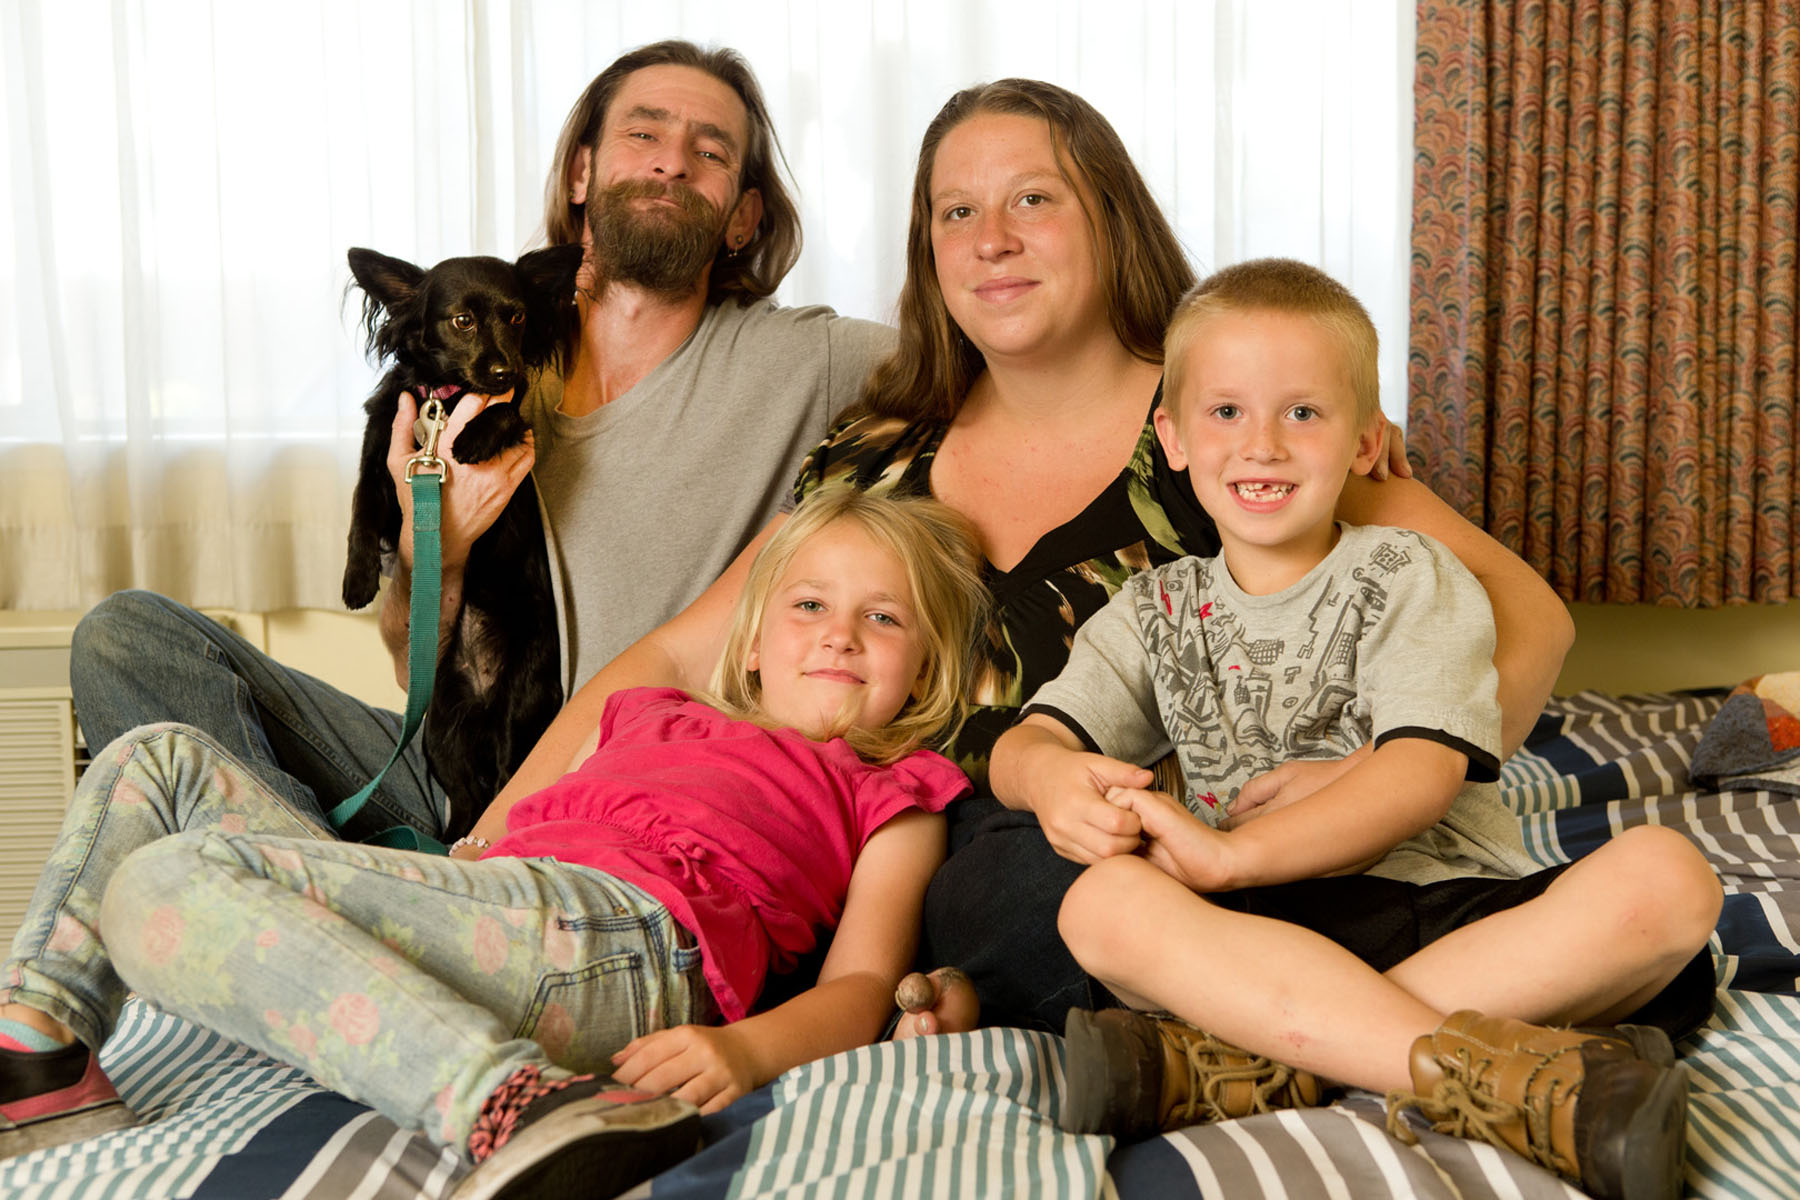 From left to right: J.D., Mary Delp, her two children Elijah Delp, 6, and Krystallynn Delp, 7, and one of their dogs, Tinkerbell, are photographed at Mary's Place the Guest Rooms in South Lake Union in Seattle, WA on June 23, 2016. The Guest Rooms provide transitional housing for families including those with pets. Delp says she wouldn't have come here if they didn't allow Tinkerbell and the family would be sleeping in the sleeping in their van. (photo © Karen Ducey Photography)